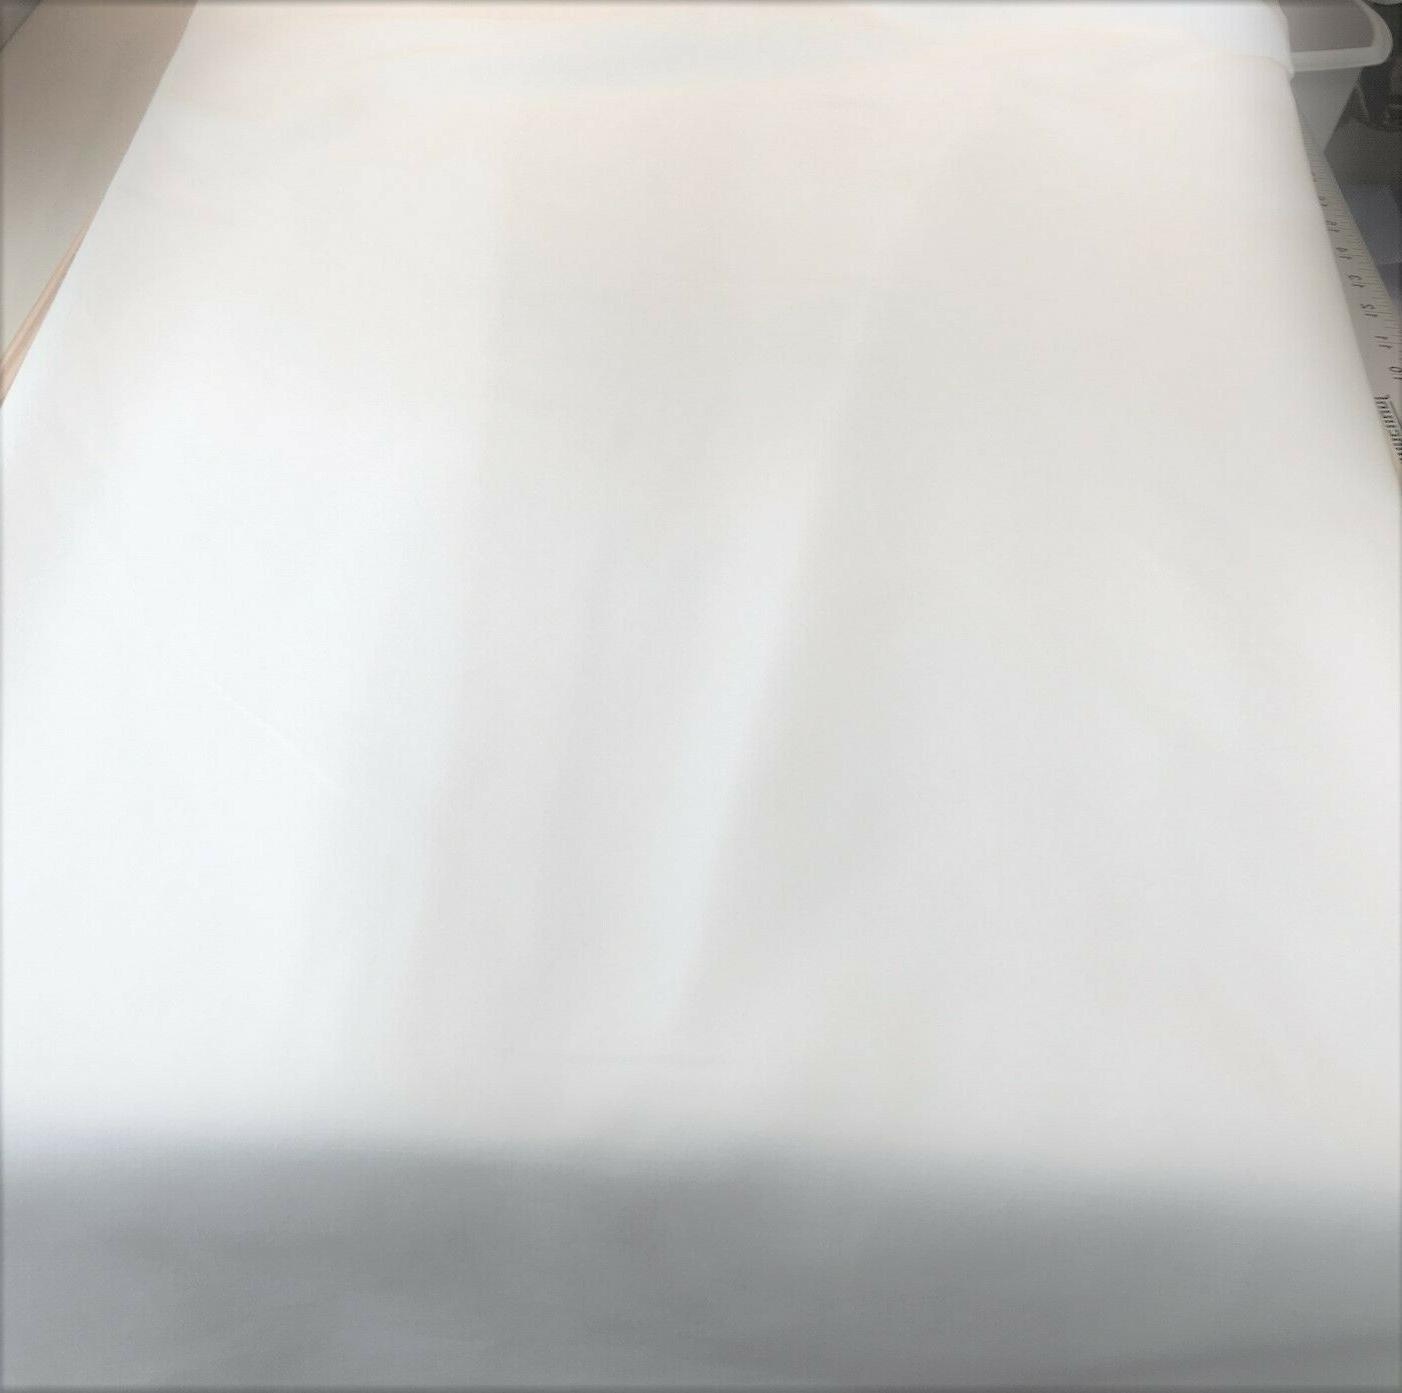 table runner white cotton fabric 24 sizes